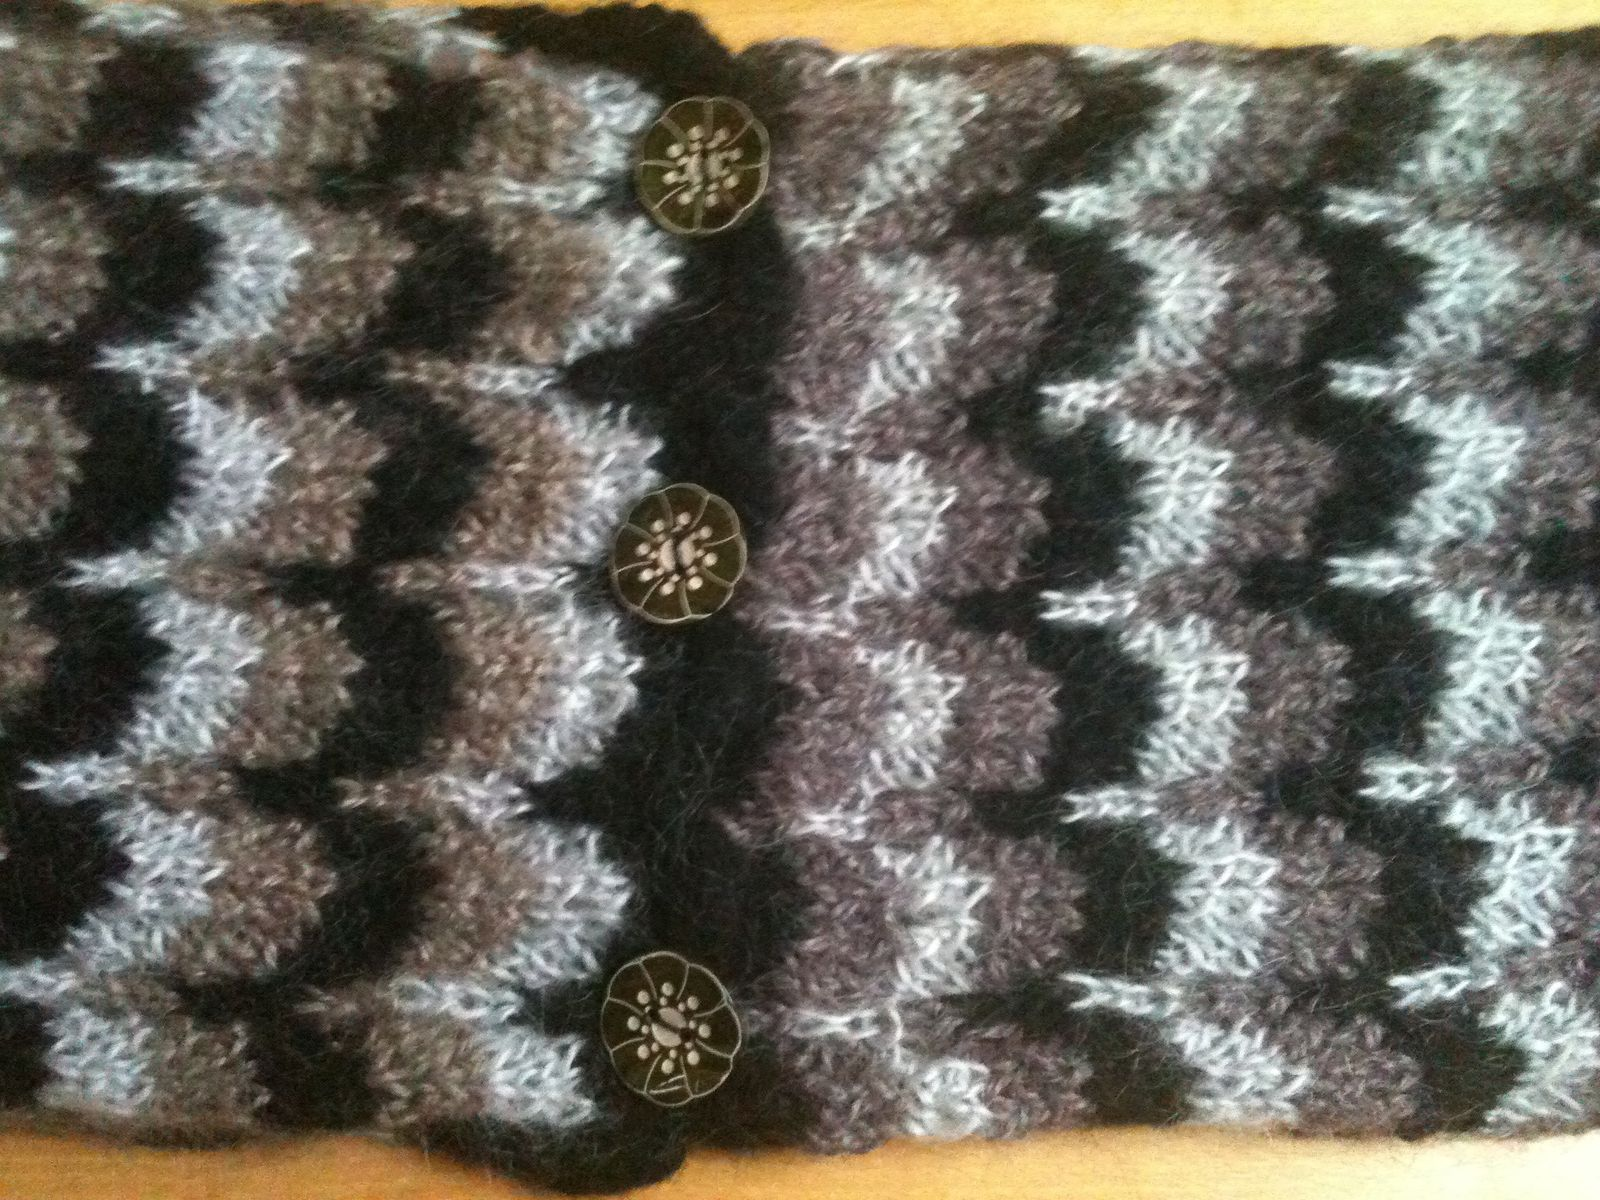 snood à souvenirs